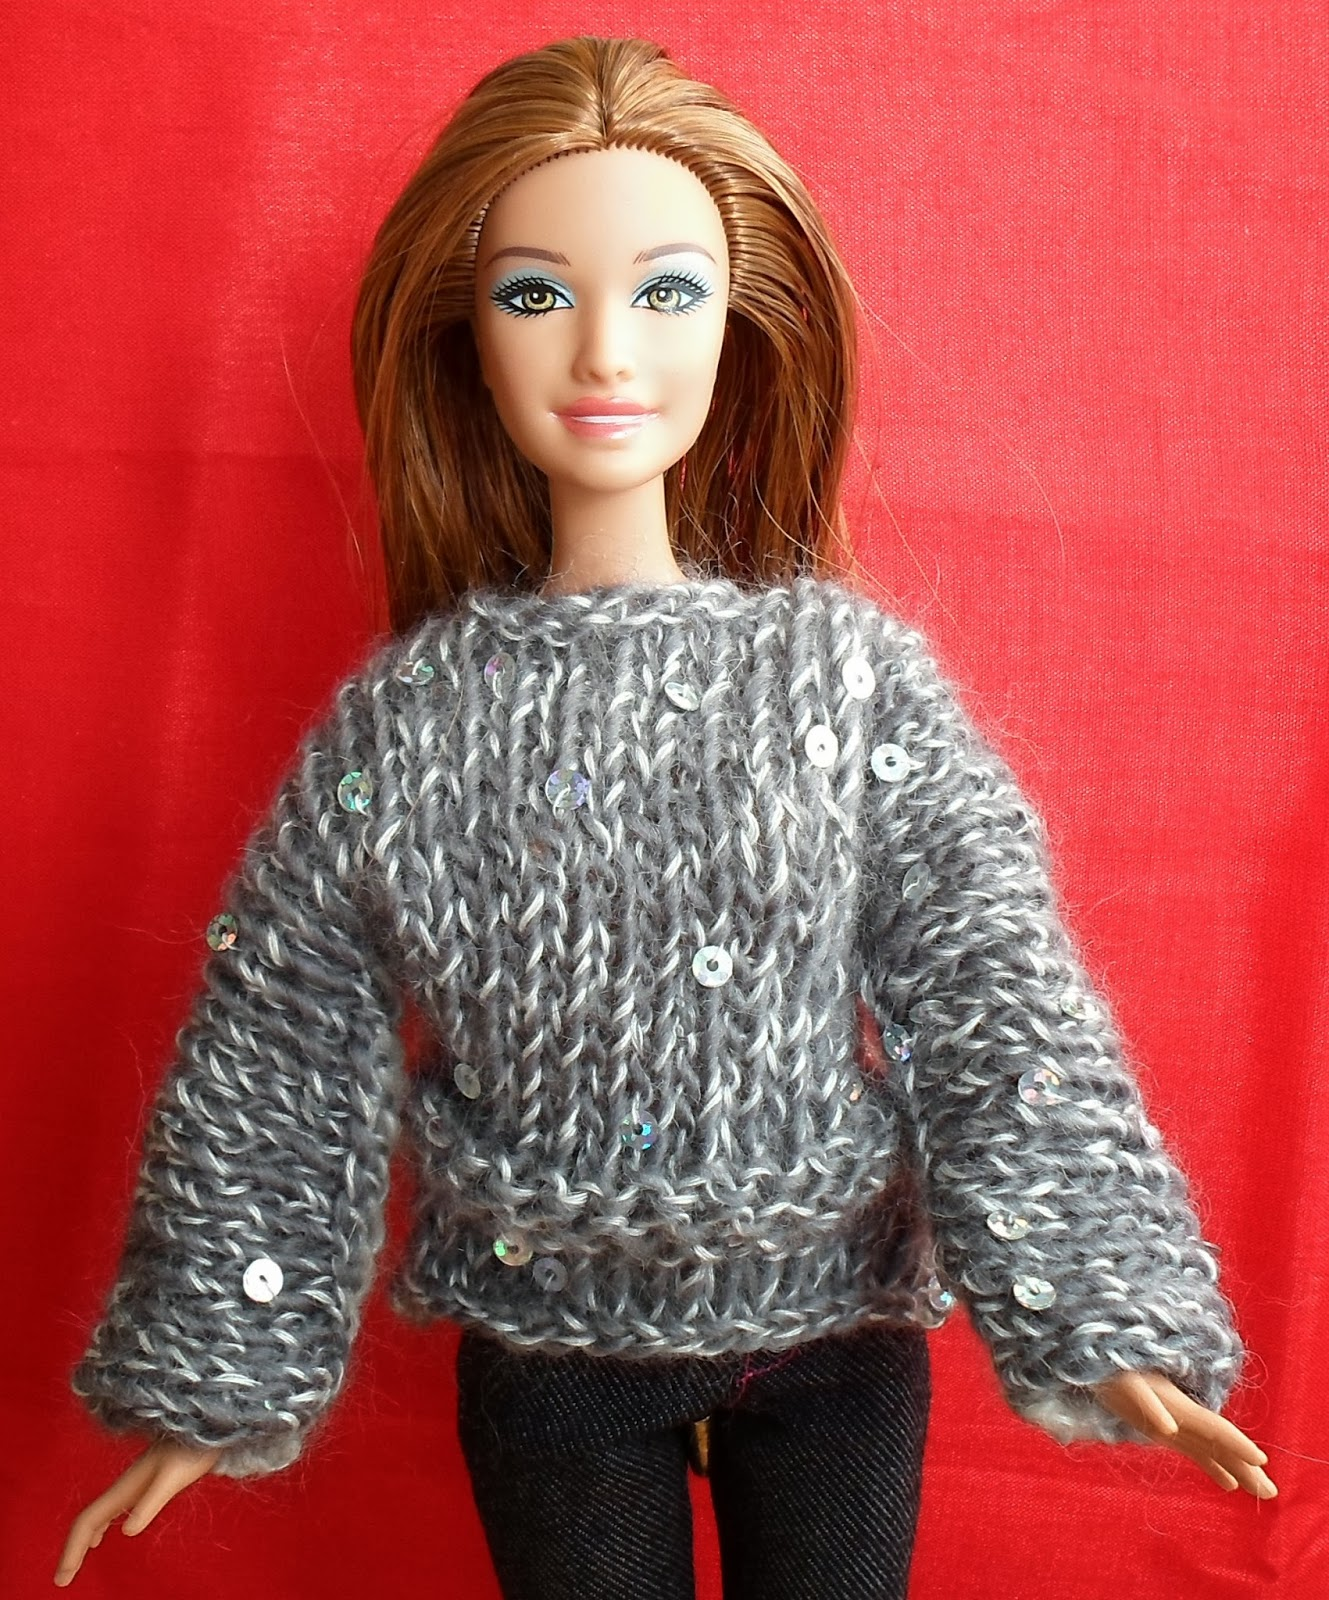 Knit Crochet Barbie Clothes Patterns Sante Blog